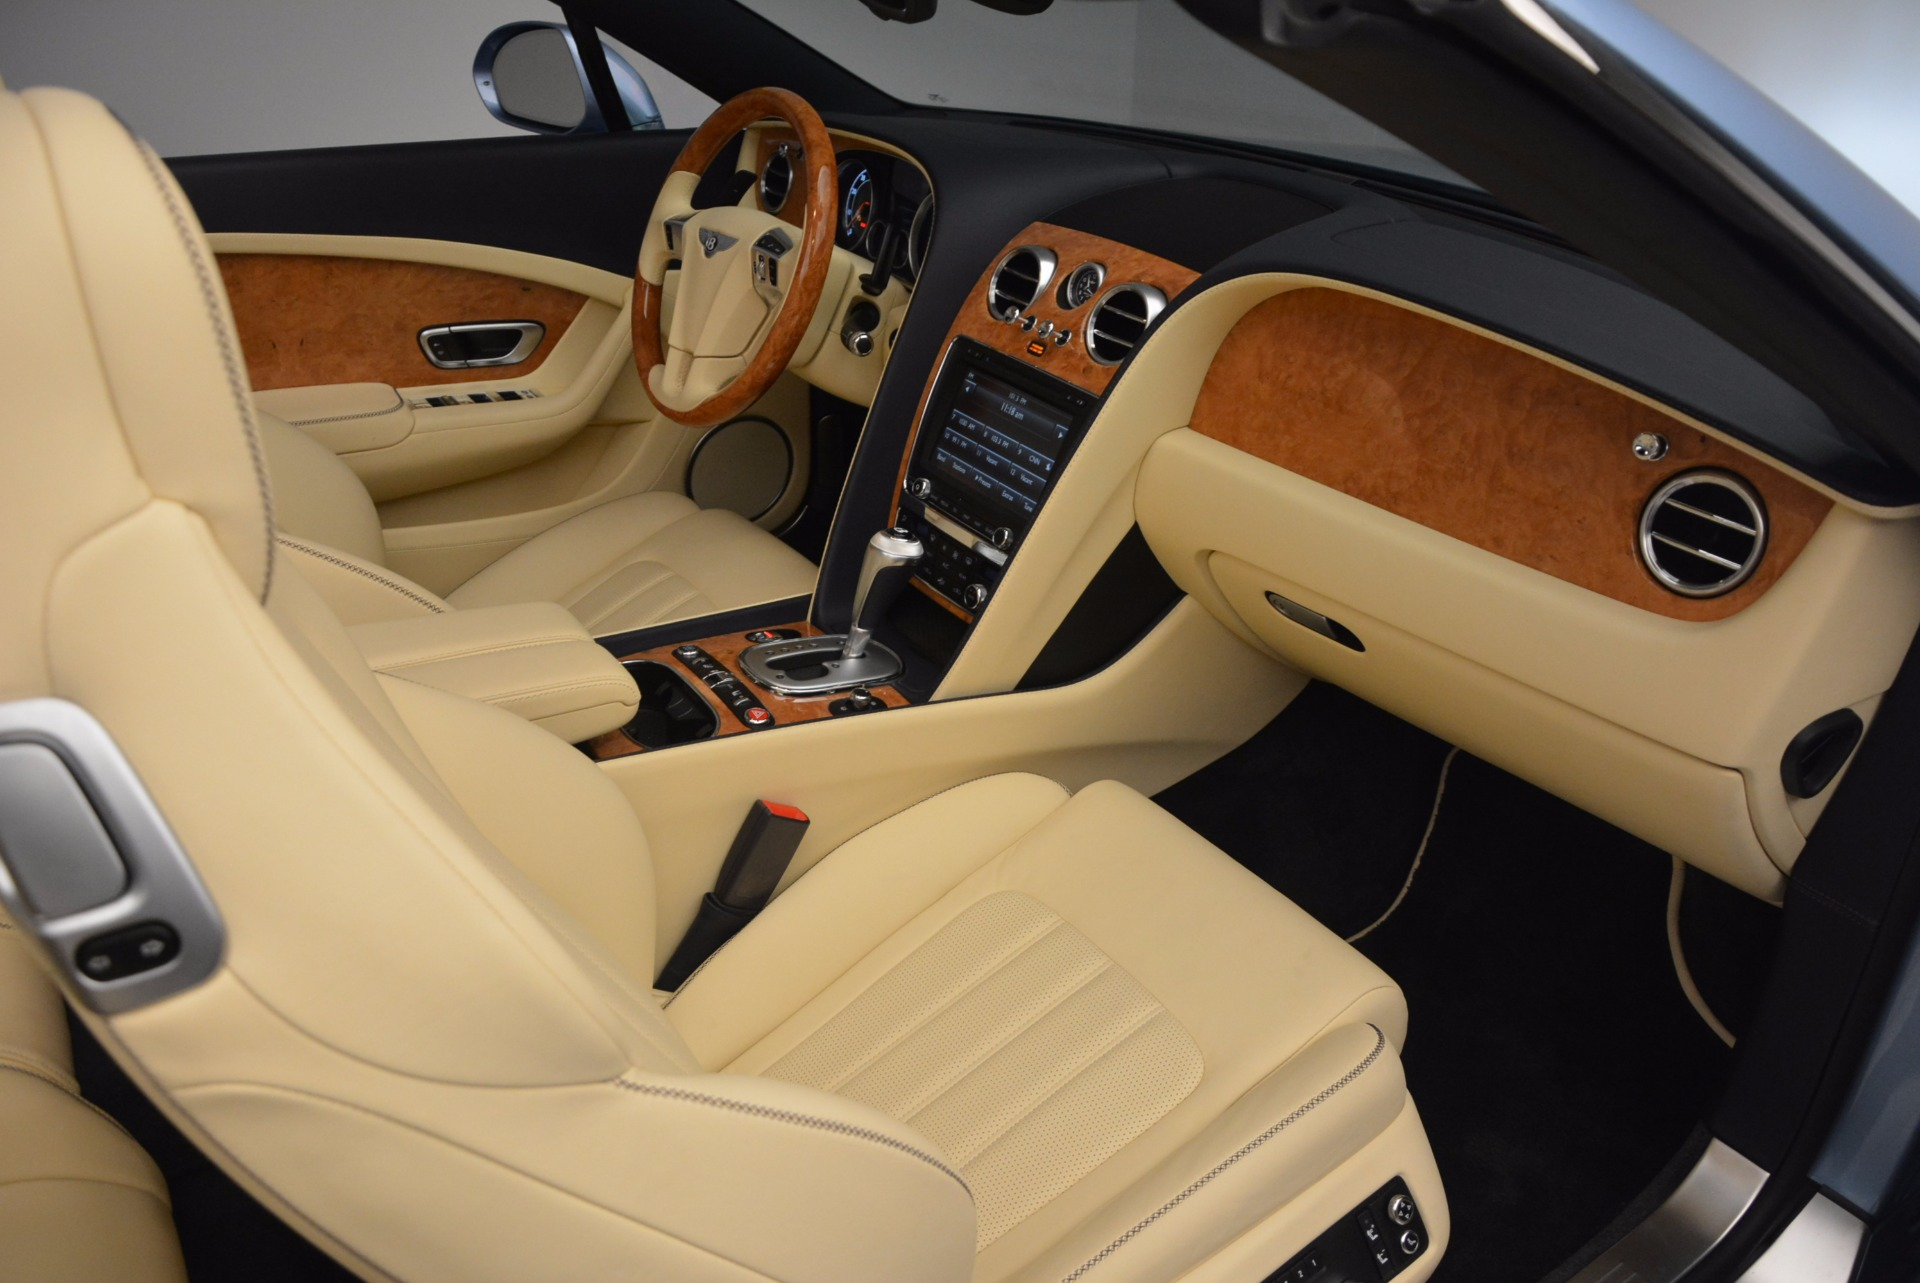 Used 2012 Bentley Continental GTC W12 For Sale In Greenwich, CT 1475_p43